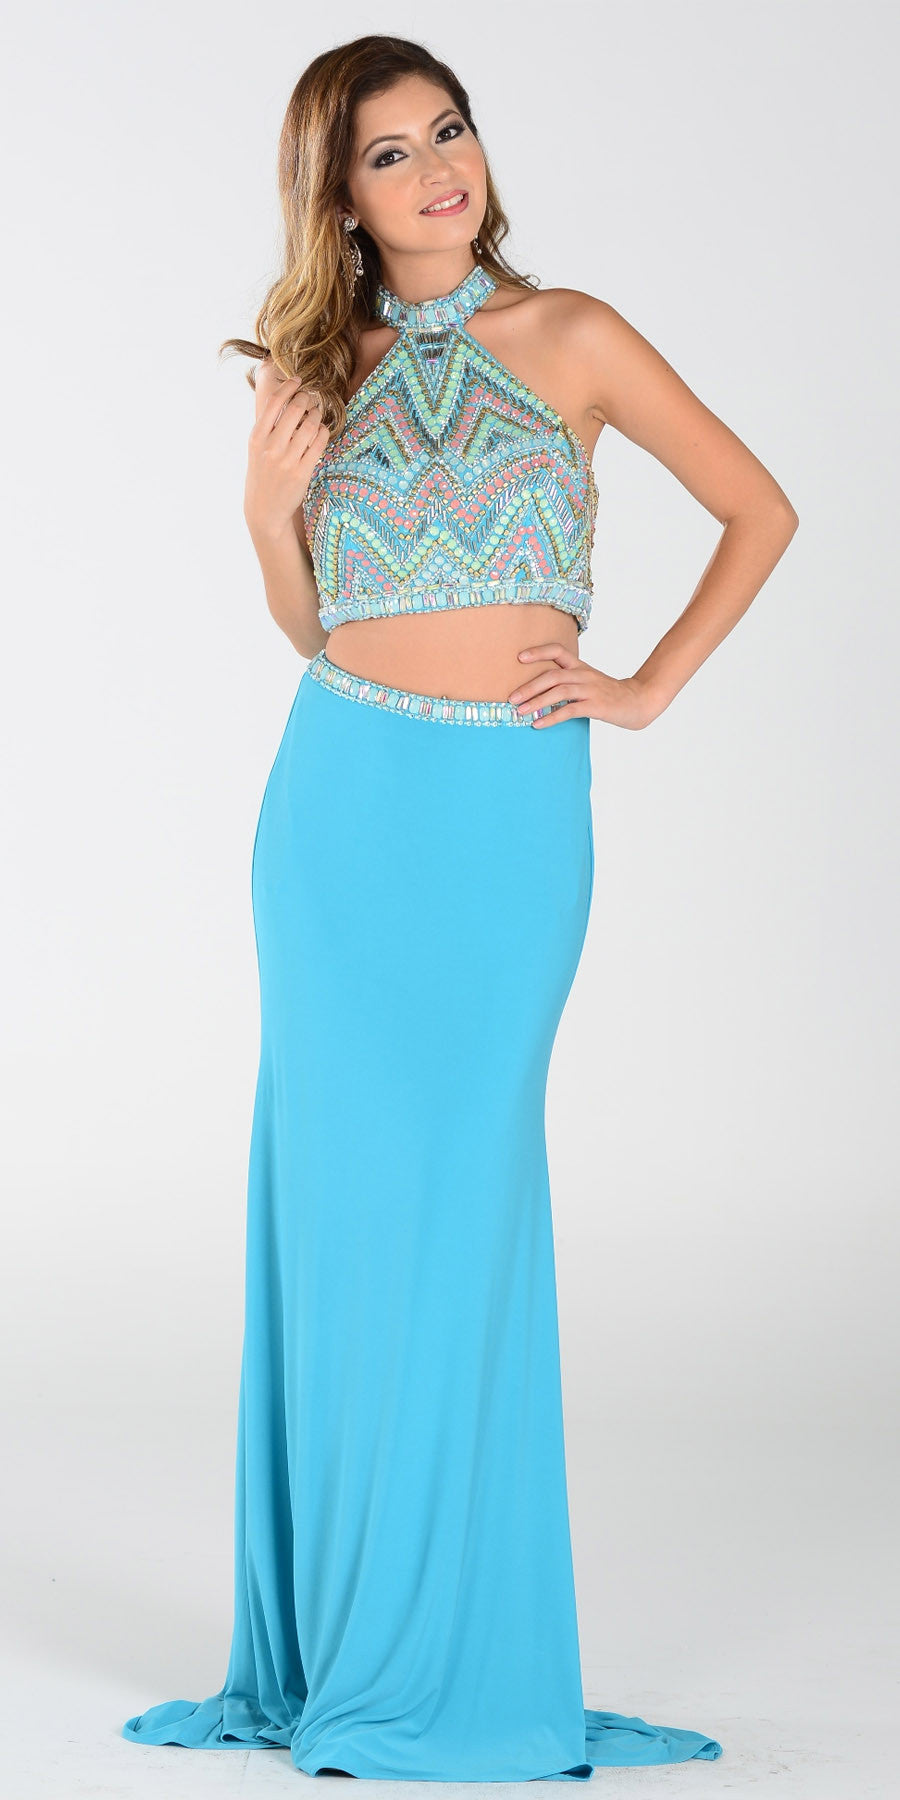 Poly USA 7366 Long 2 Piece Prom Gown Coral Choker Neck Strap ...